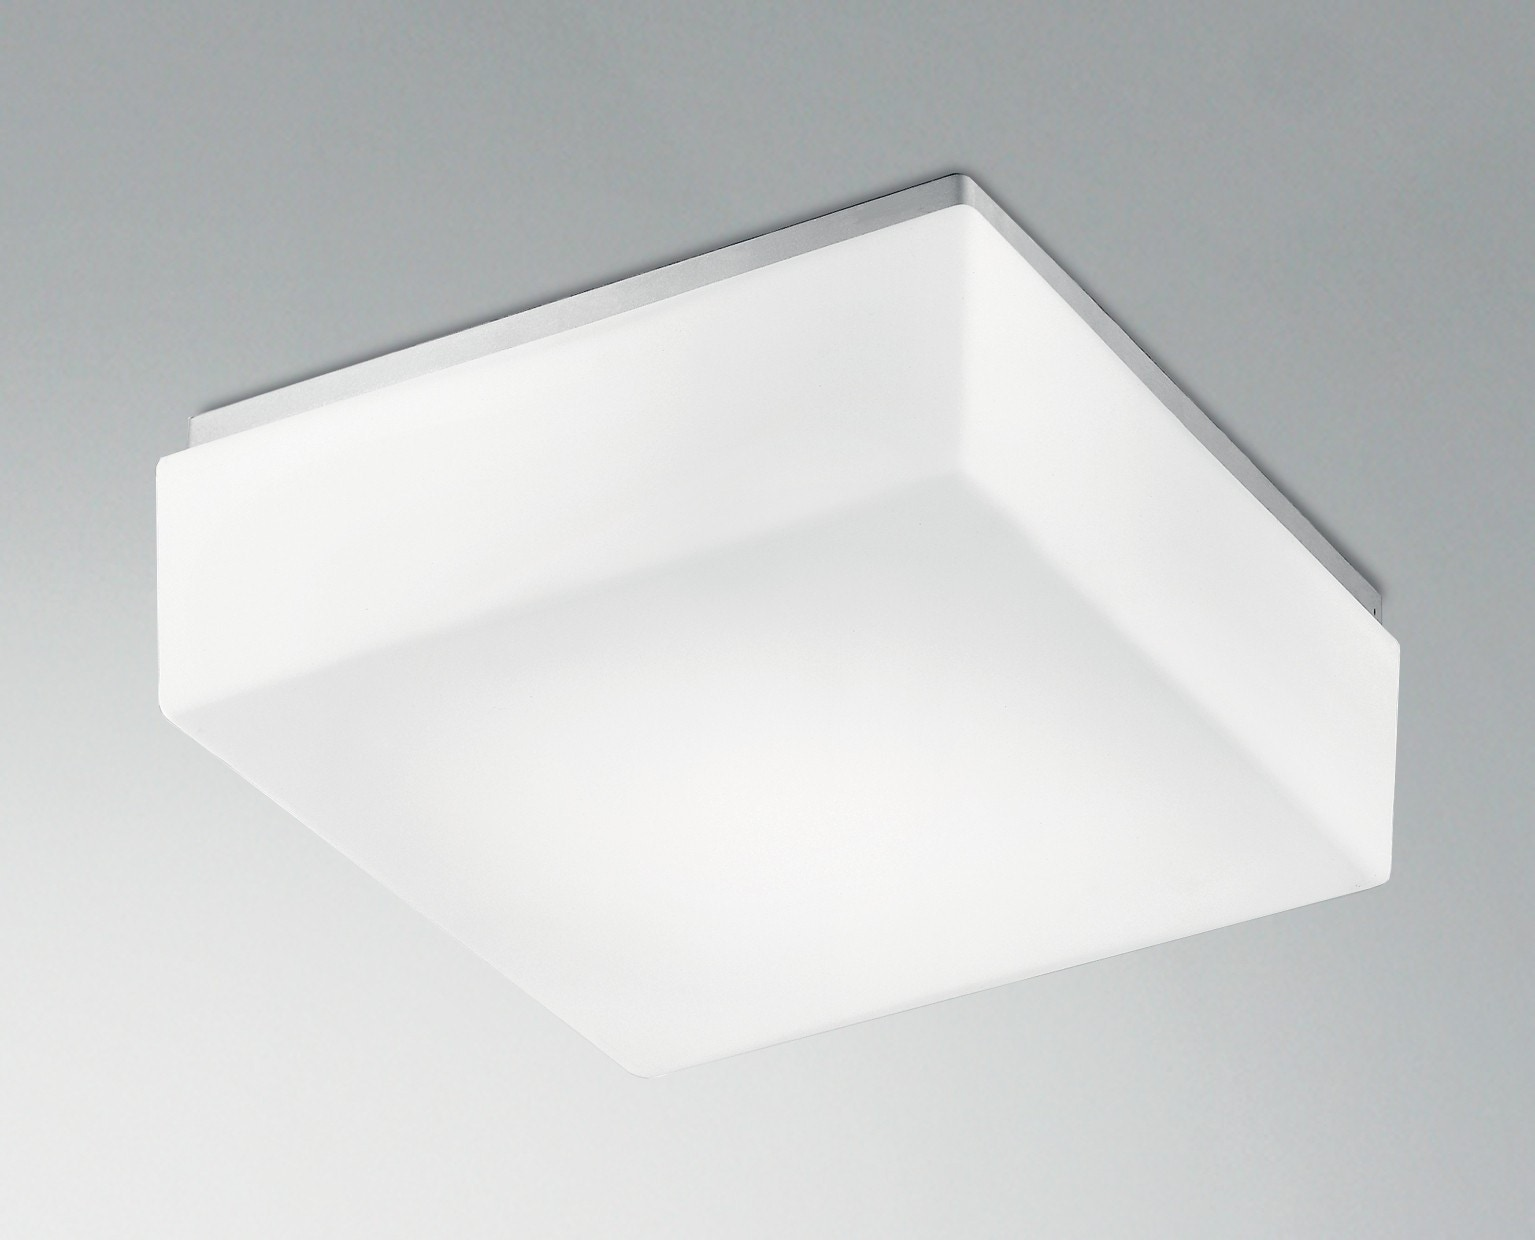 itre lighting outdoor lighting itre lighting perfect for itre lighting italy interesting itres